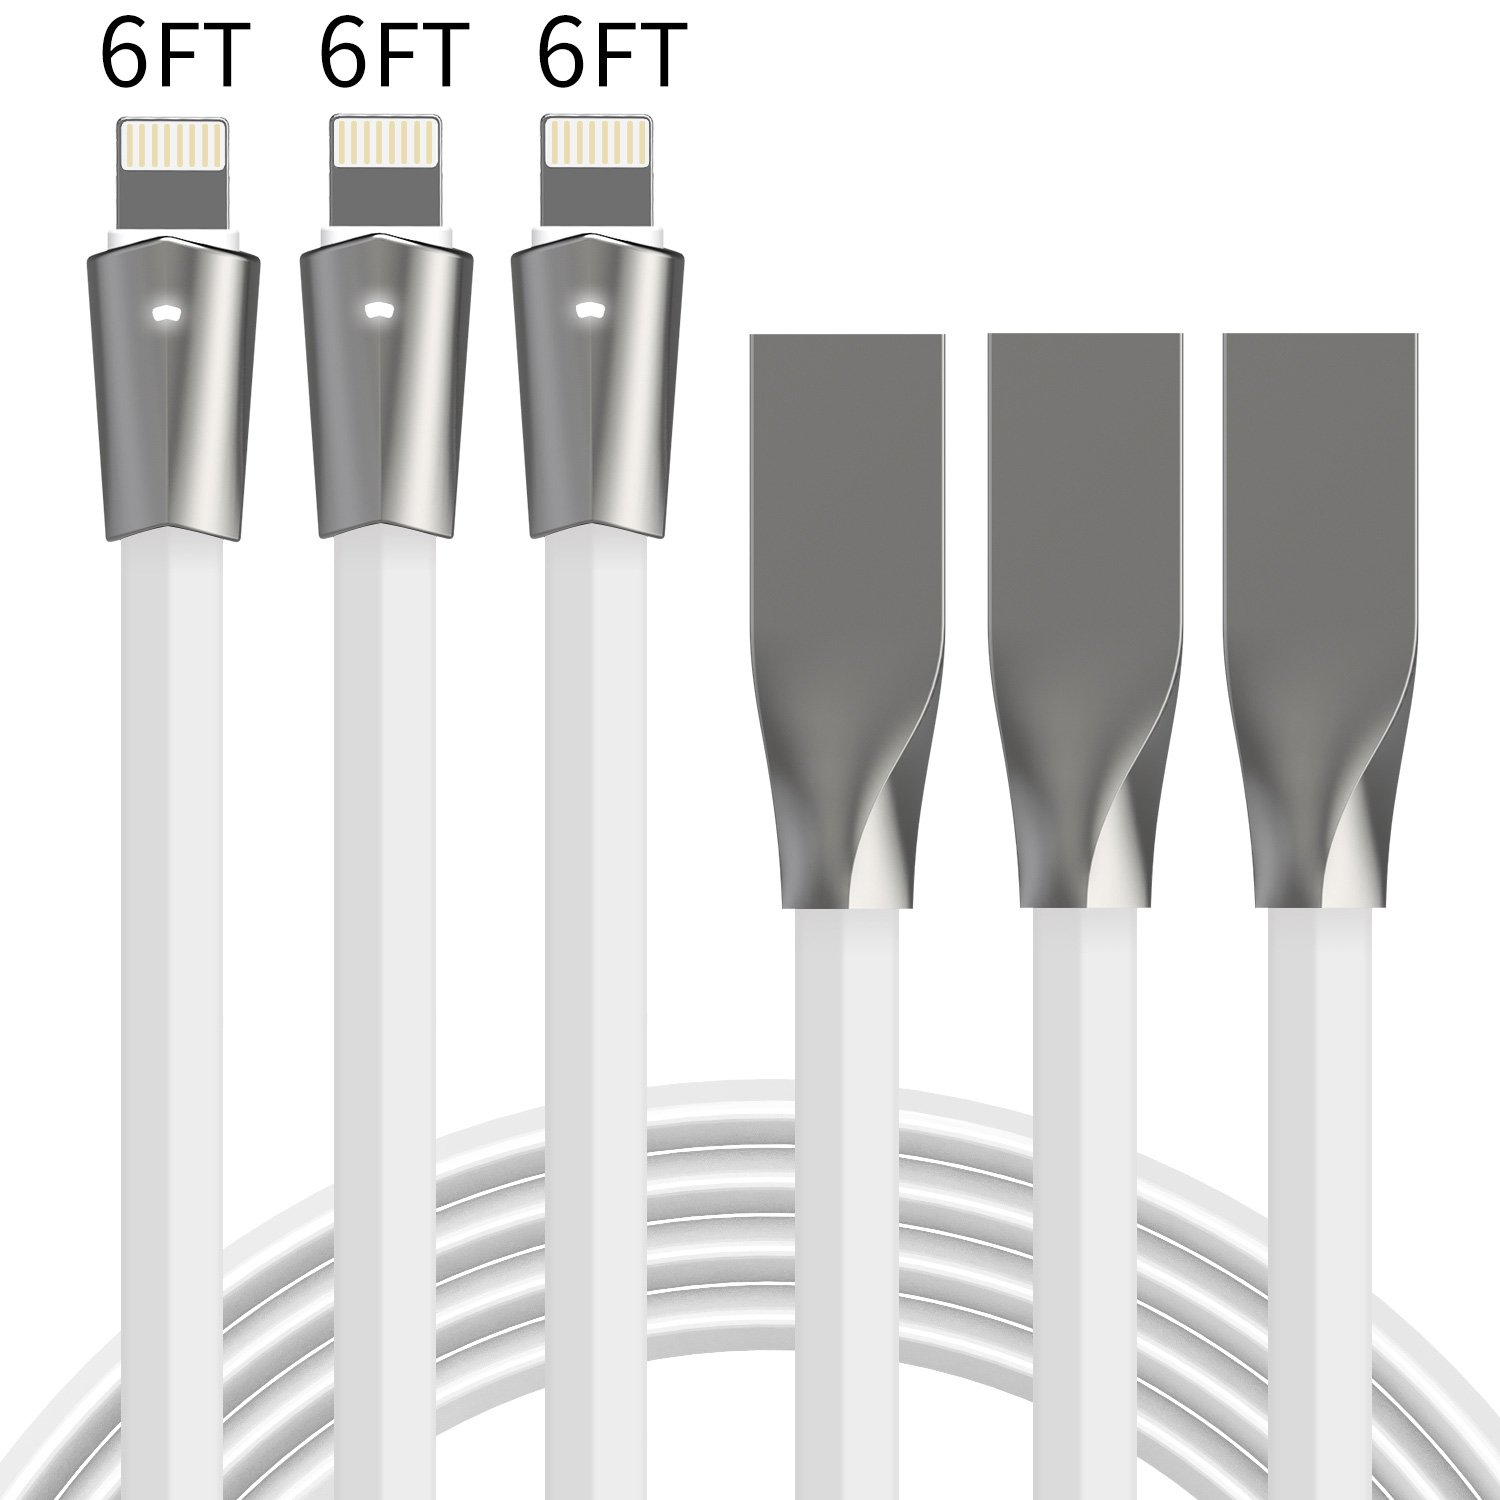 buy popular d9c44 c92cf Top 1 walmart iphone 5 charger cable